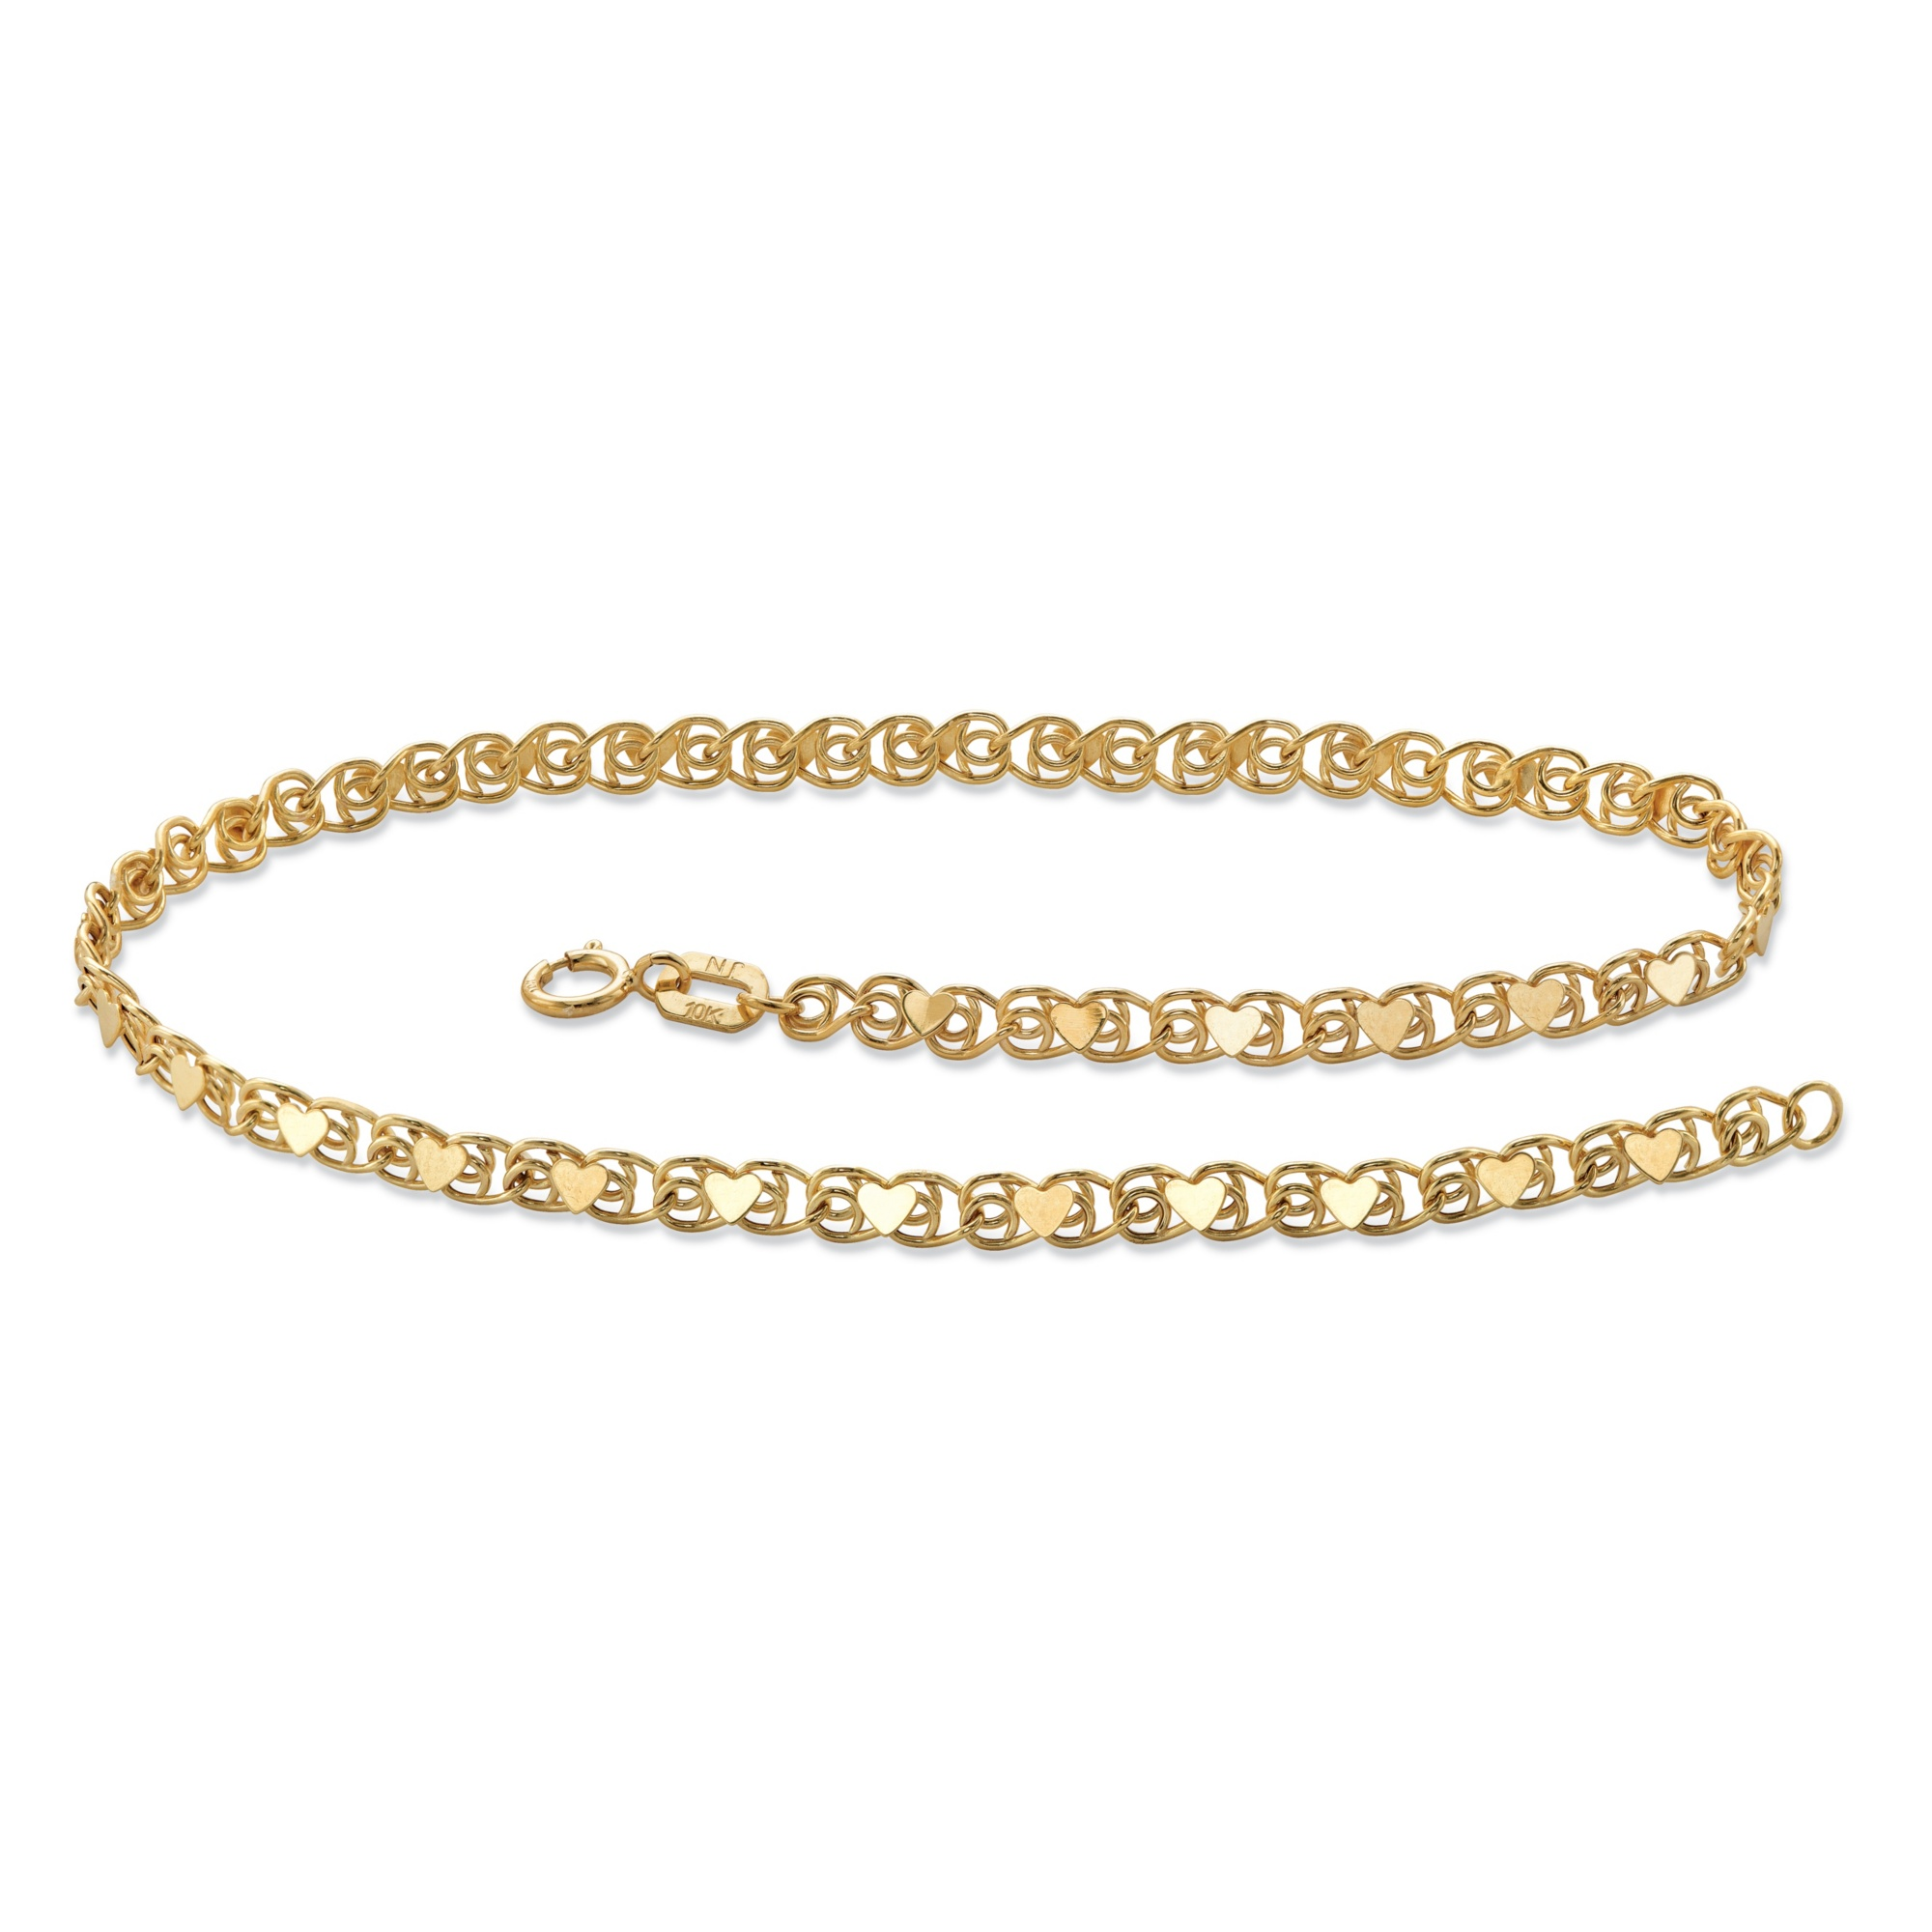 products diamond yellow detail open jewelry solid bracelets cut ankle cfm anklet heart at bracelet in with gold charms palmbeach